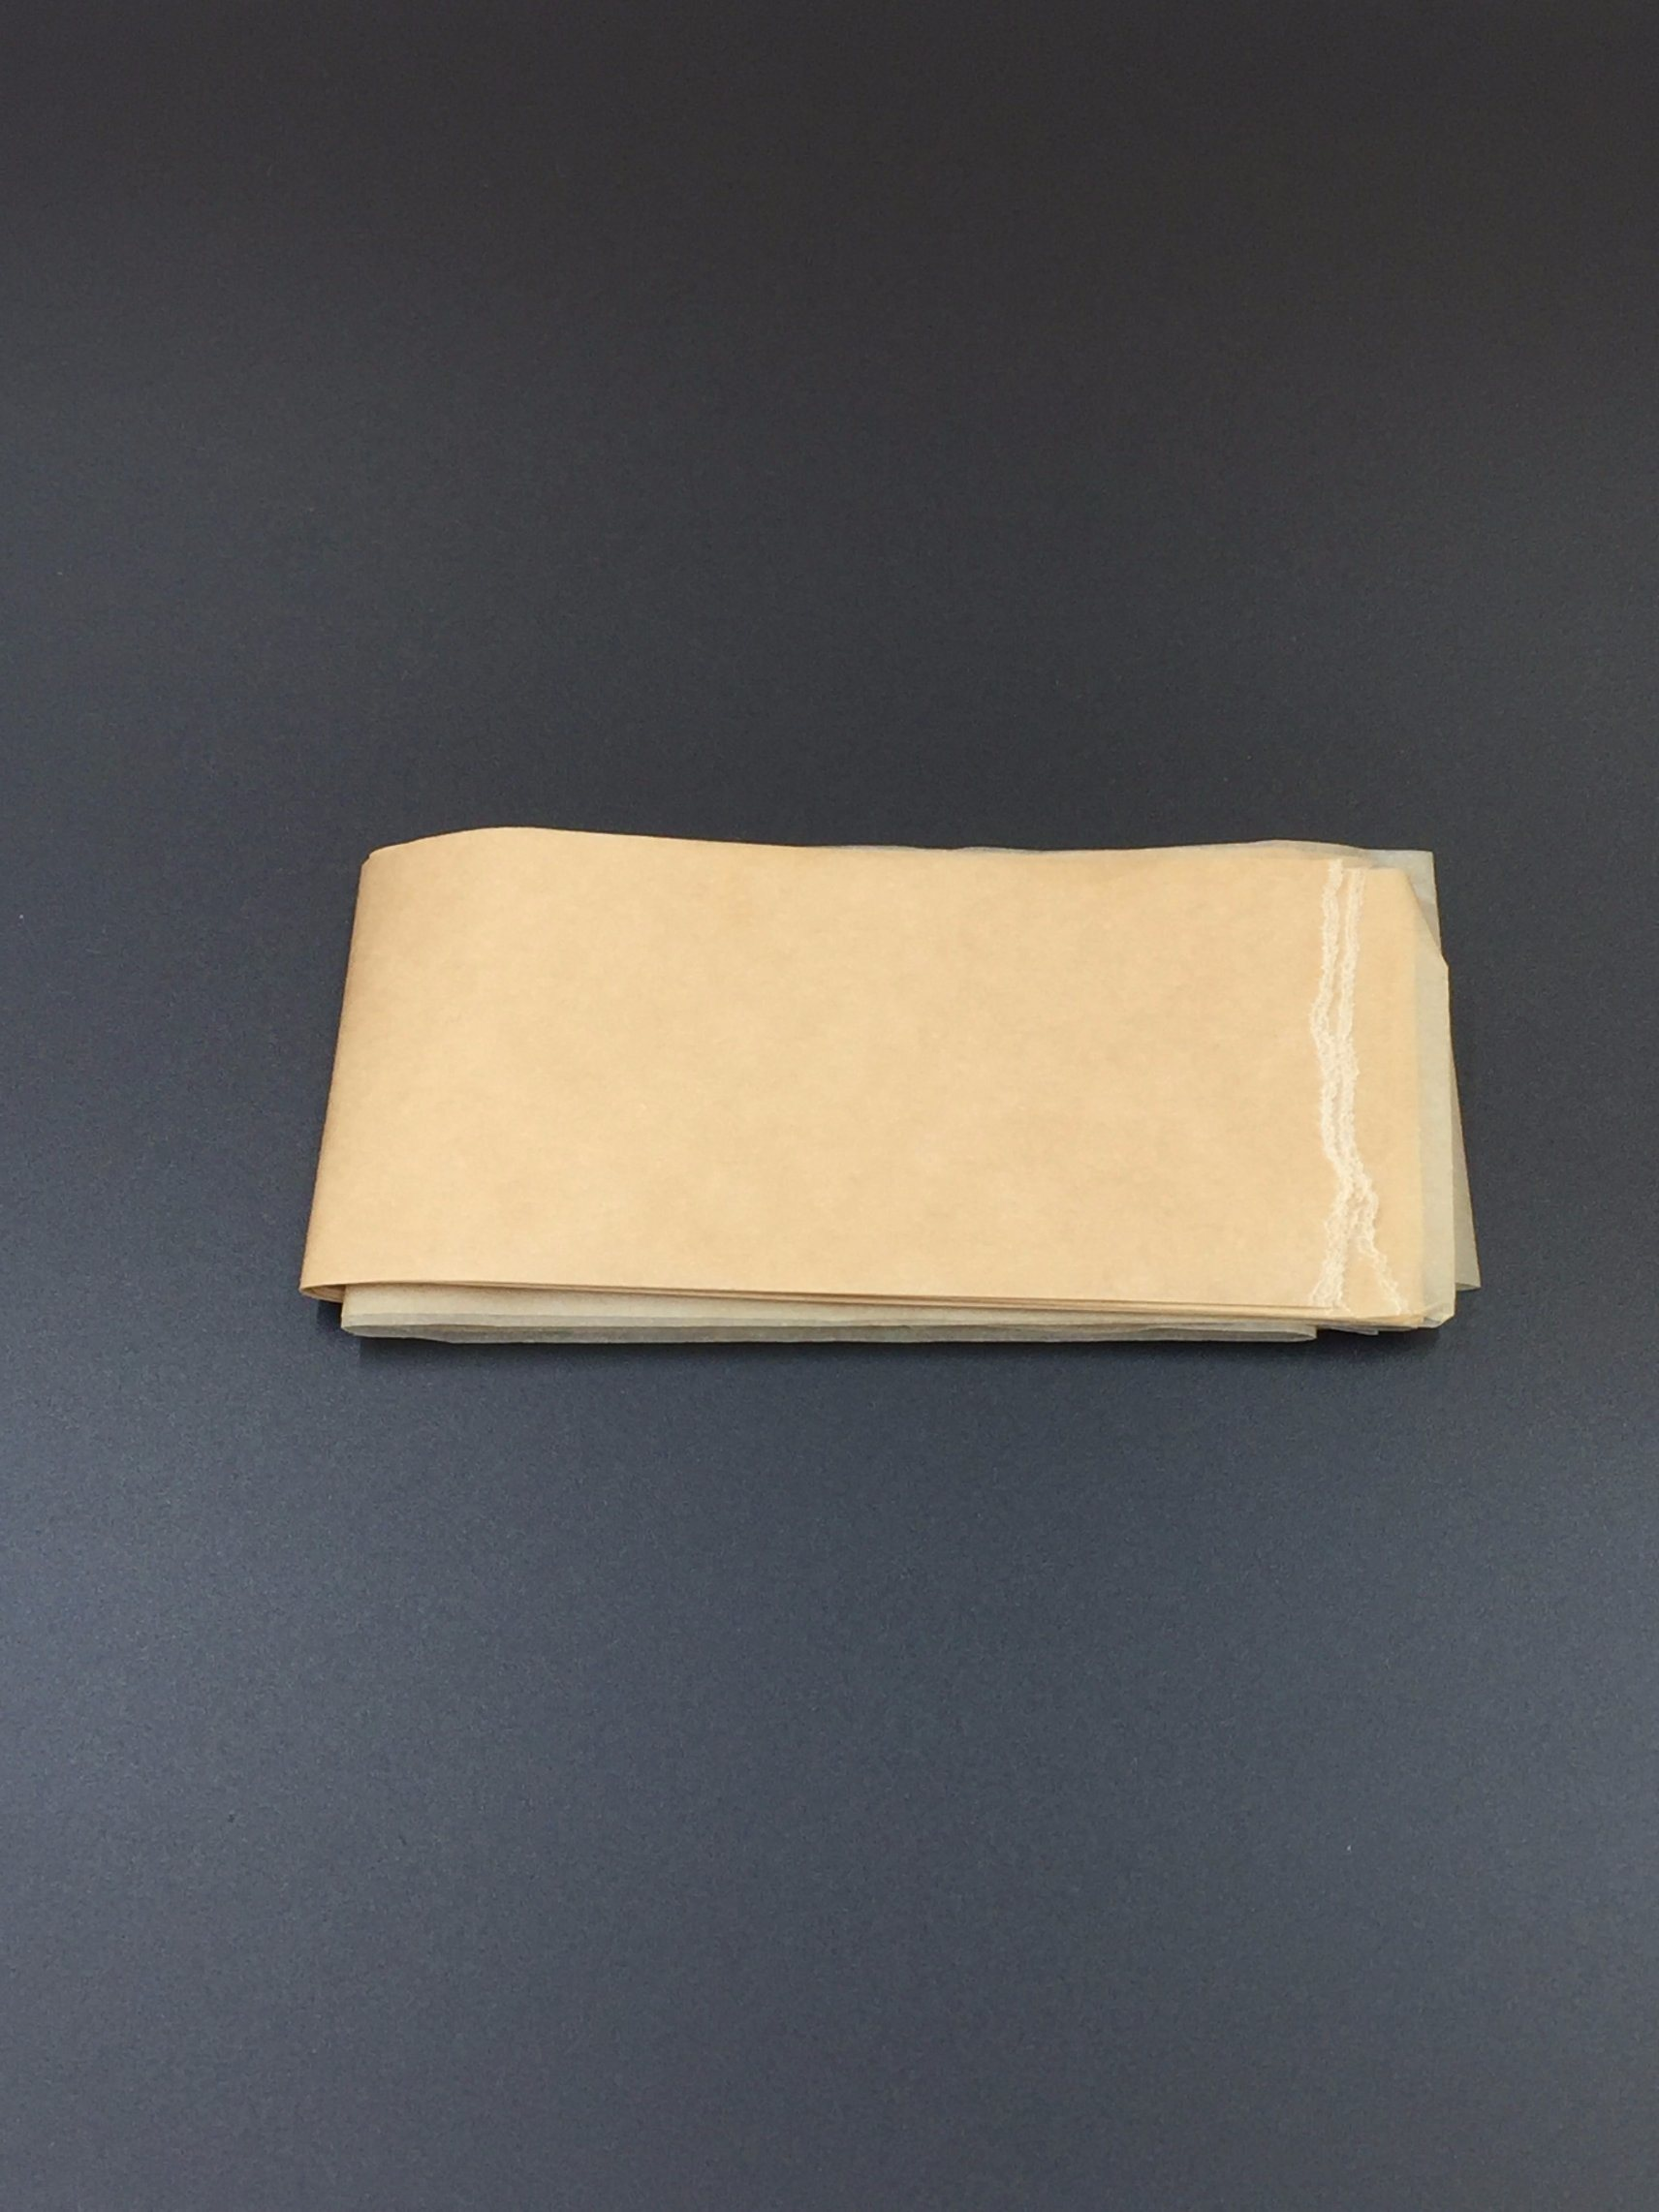 12.5GSM Brown Color Cigarette Paper with King Slim Size